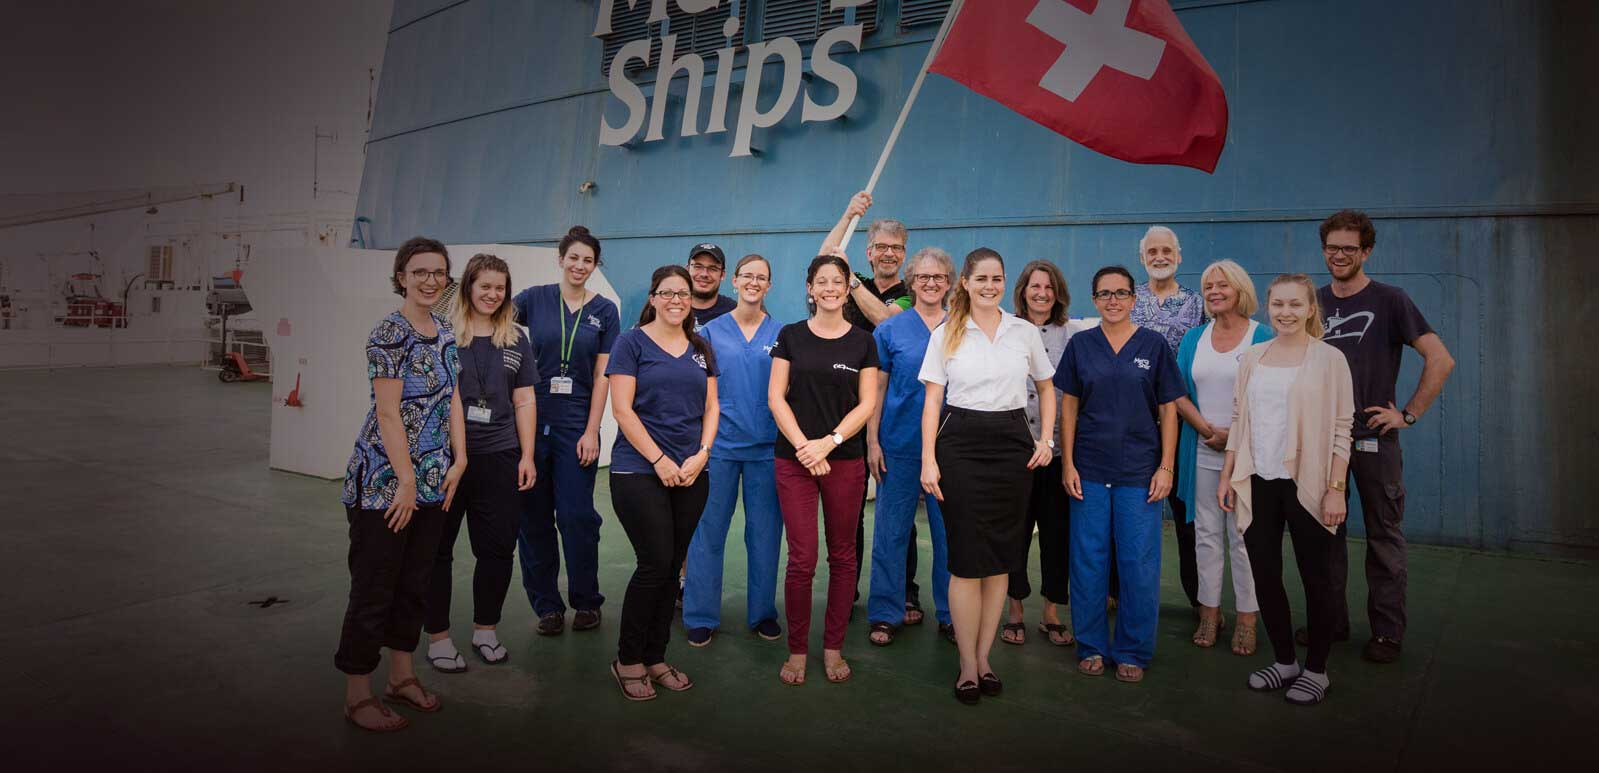 https://mercyships.ch/wp-content/uploads/2017/05/Equipage_Suisse.jpg